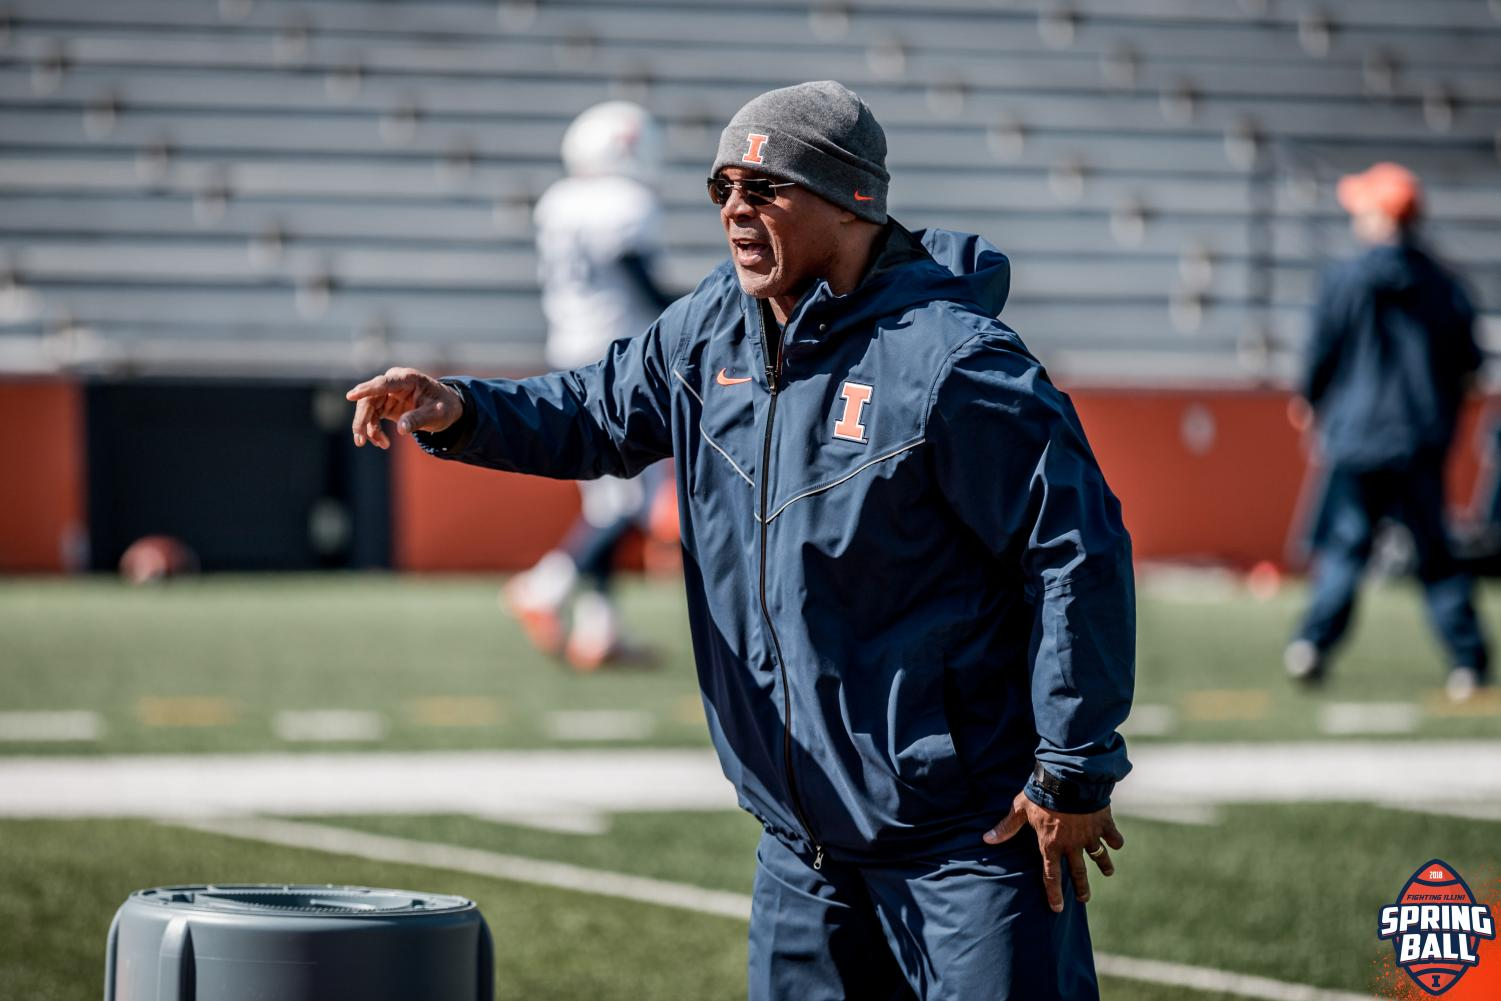 Illinois safeties coach and passing game coordinator Gill Byrd helps direct football practice. Byrd joins tight ends coach Cory Patterson and defensive line coach Austin Clark as one of the team's newest coaching additions.